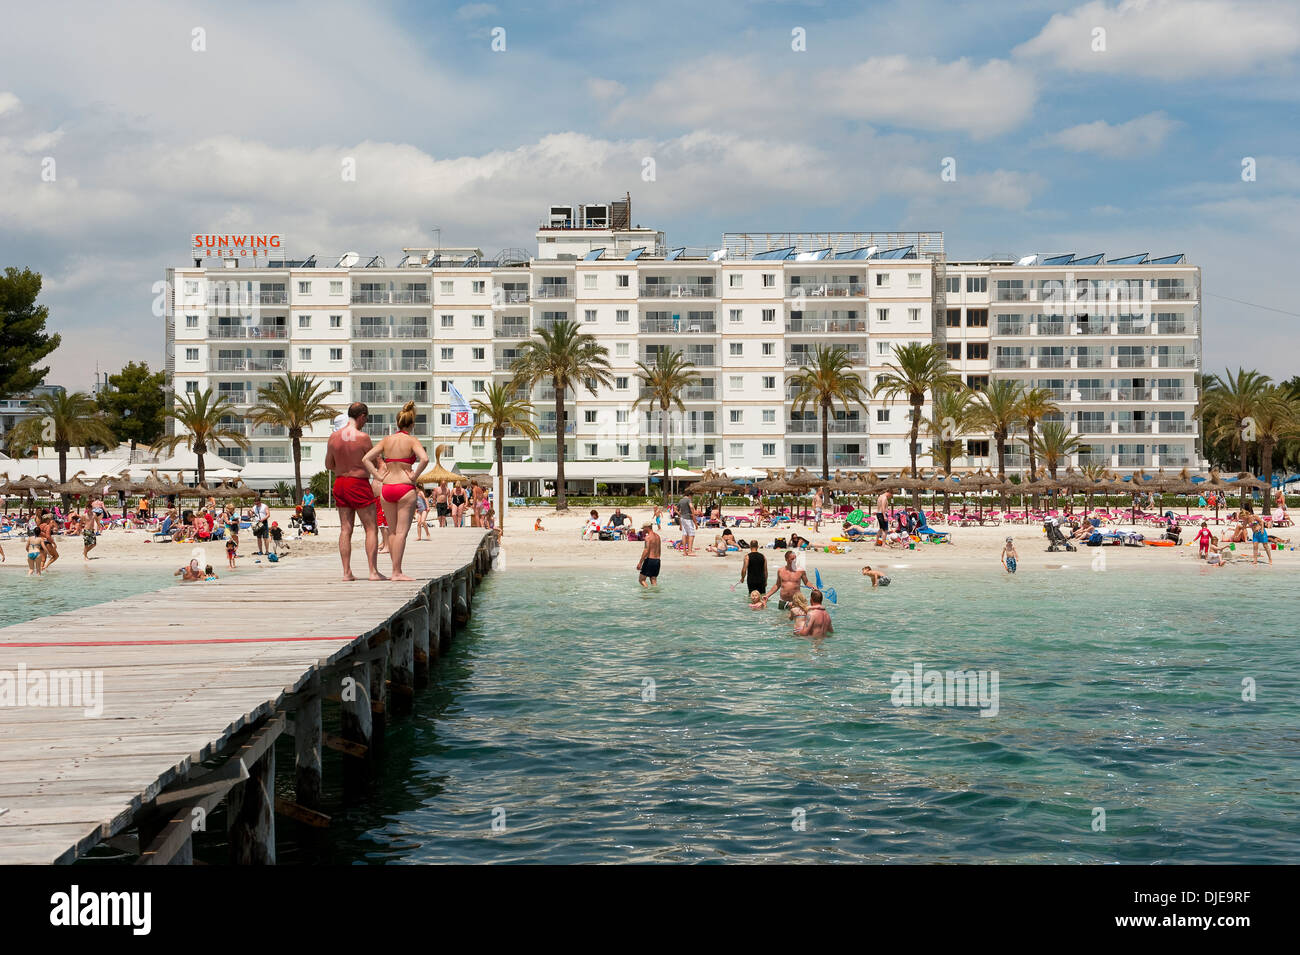 Holidaymakers sunbathing on the beach in front of the Sunwing Resort hotel, Mallorca - Stock Image